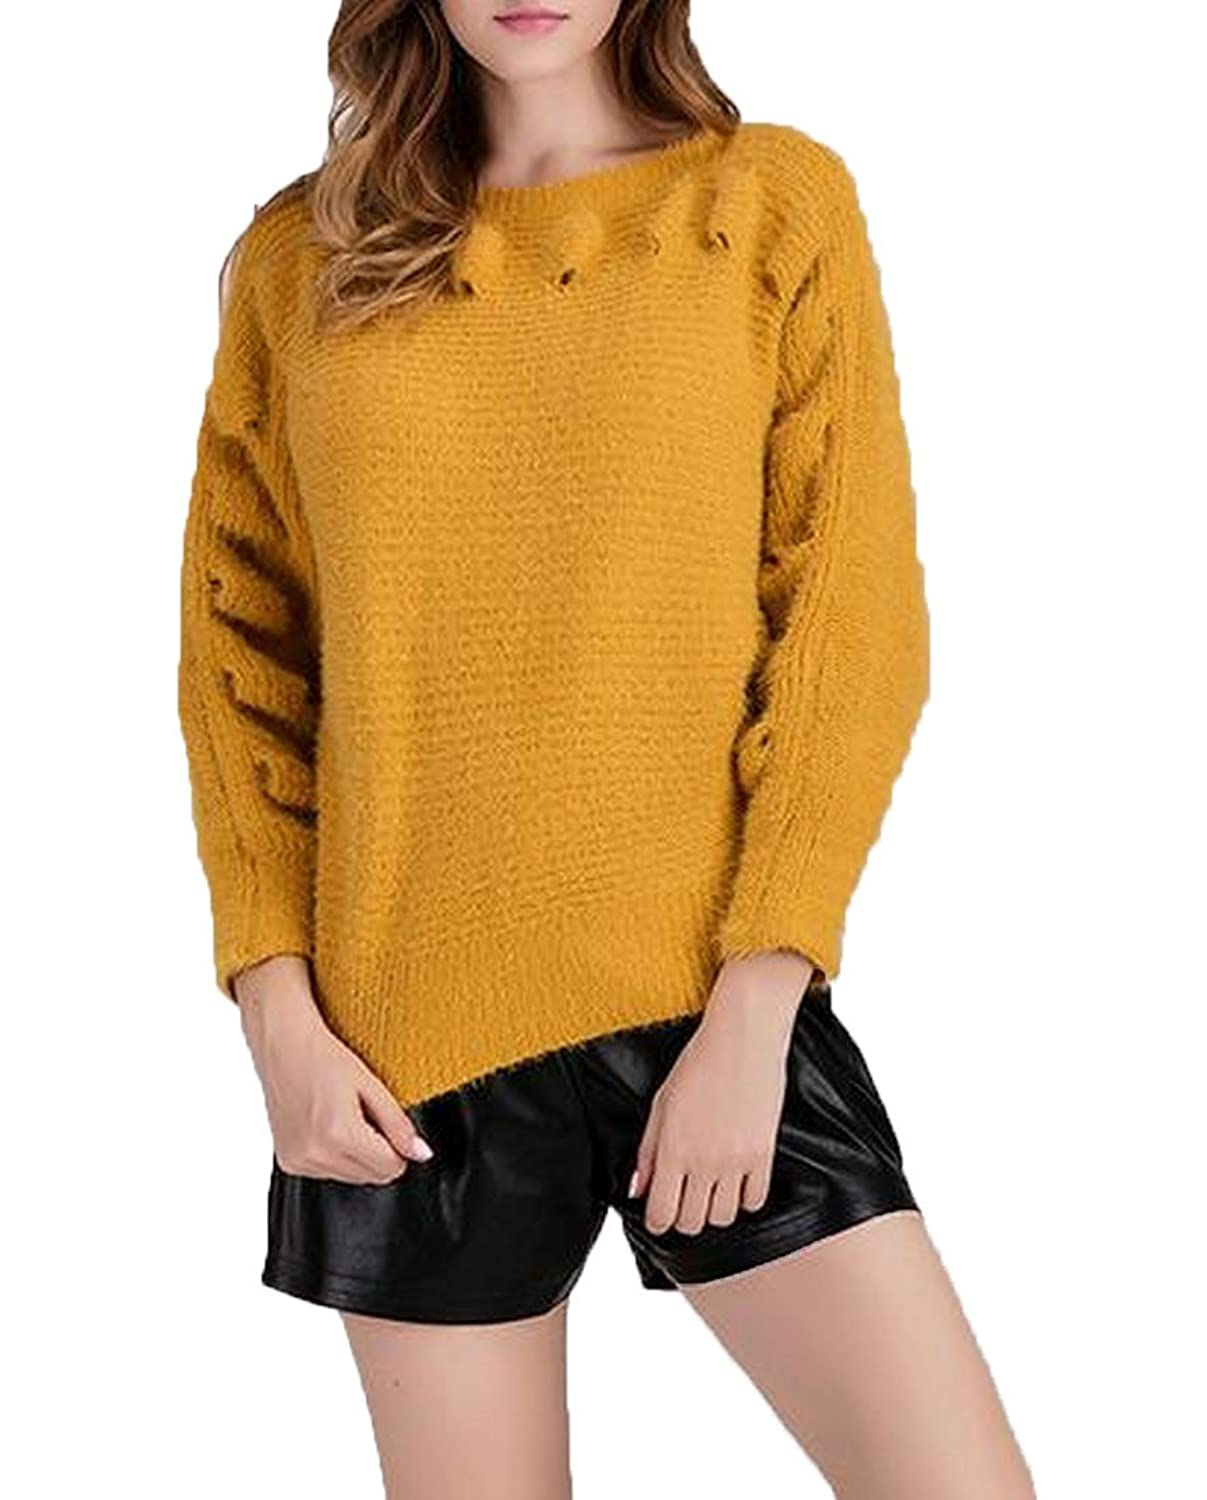 Abetteric Women's Pregnant Women Crewneck Hole Knitted Sweaters